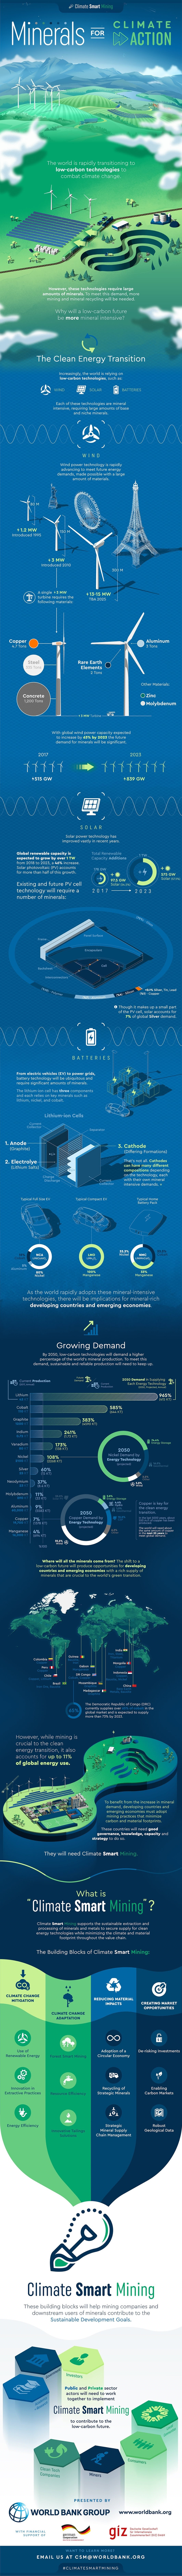 MINERALS FOR CLIMATE ACTION #INFOGRAPHIC